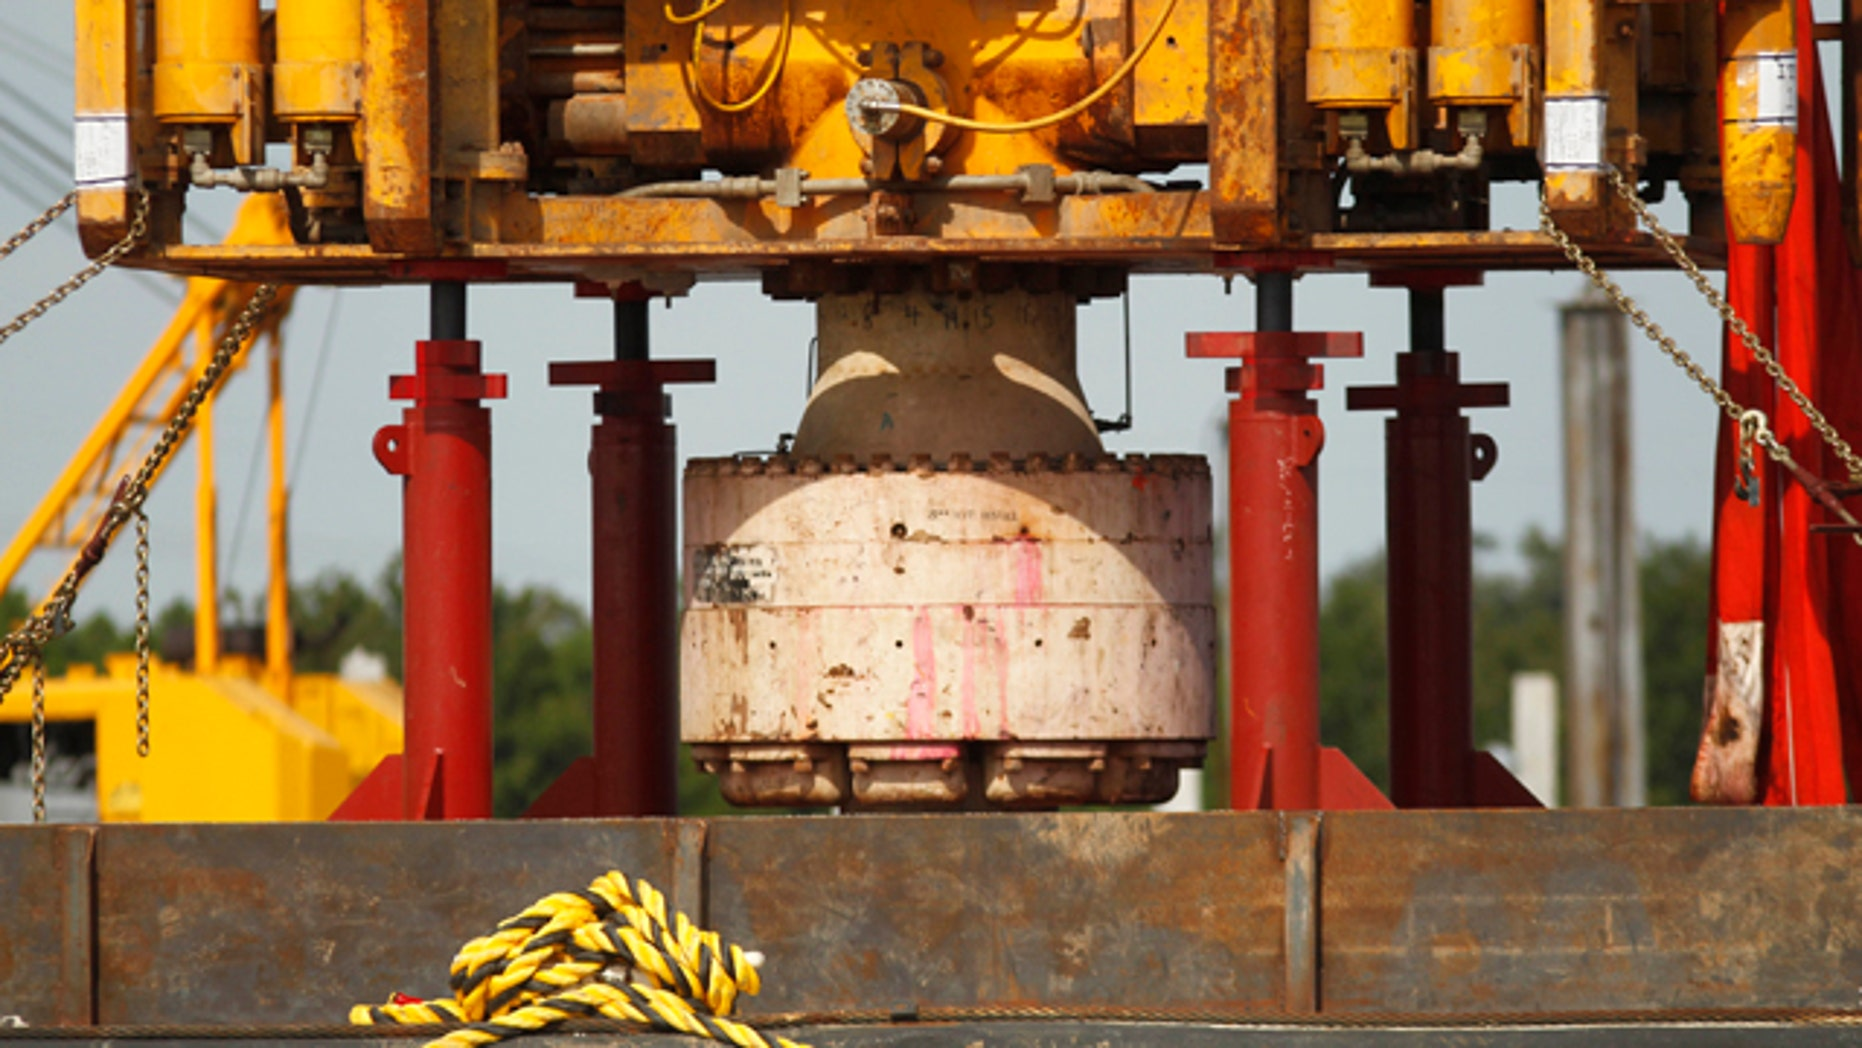 Sept. 13: The bottom of the blowout preventer stack, from the Deepwater Horizon explosion and oil spill, which is being examined as evidence for federal investigations, is seen at the NASA Michaud Assembly facility in New Orleans.